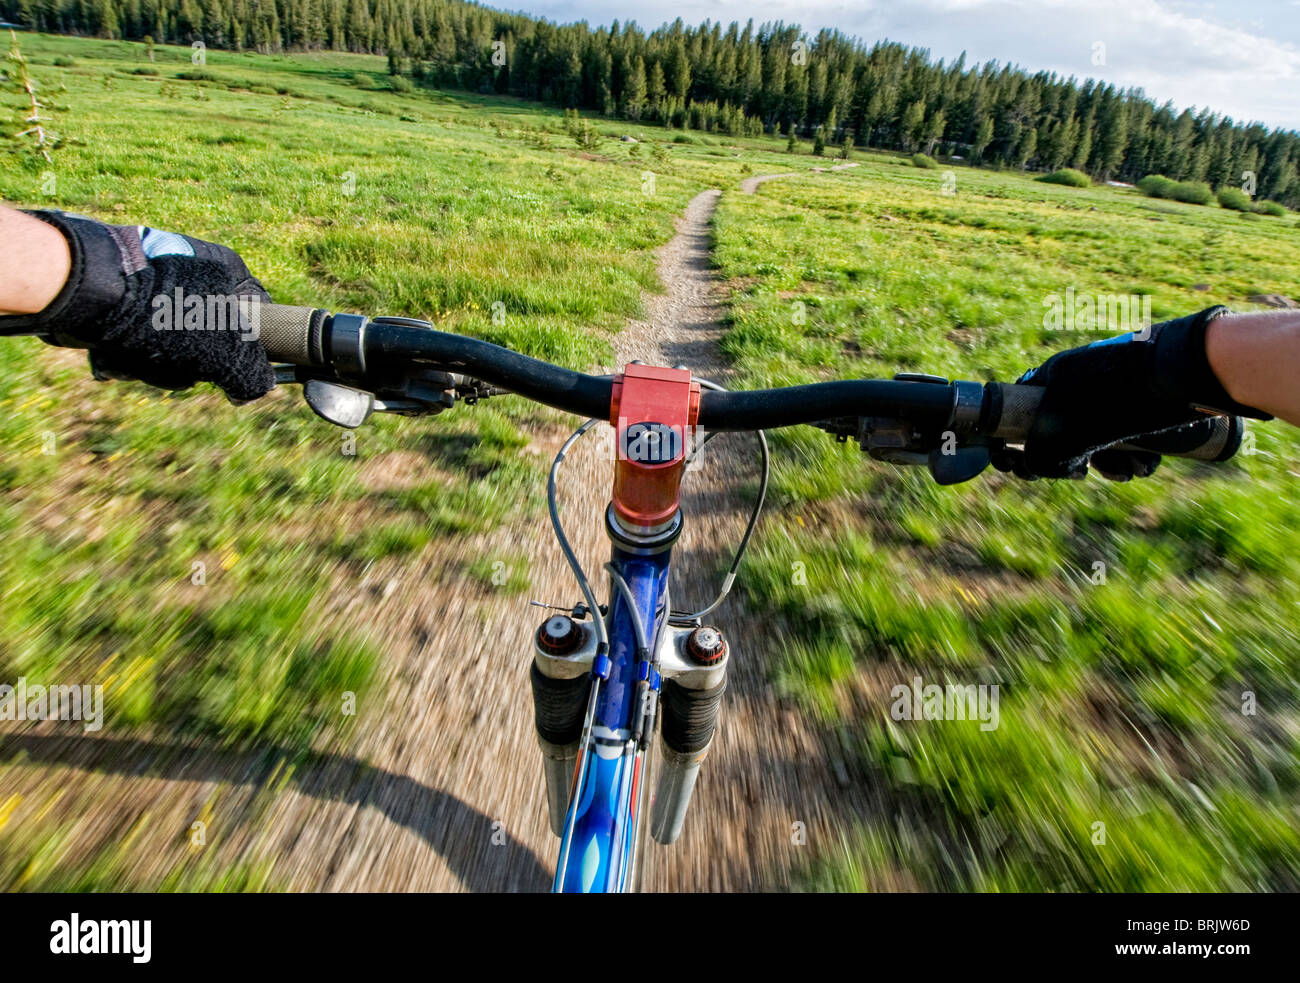 A young woman catches a quick mountain bike ride before the sun goes down in Lake Tahoe, Nevada. - Stock Image